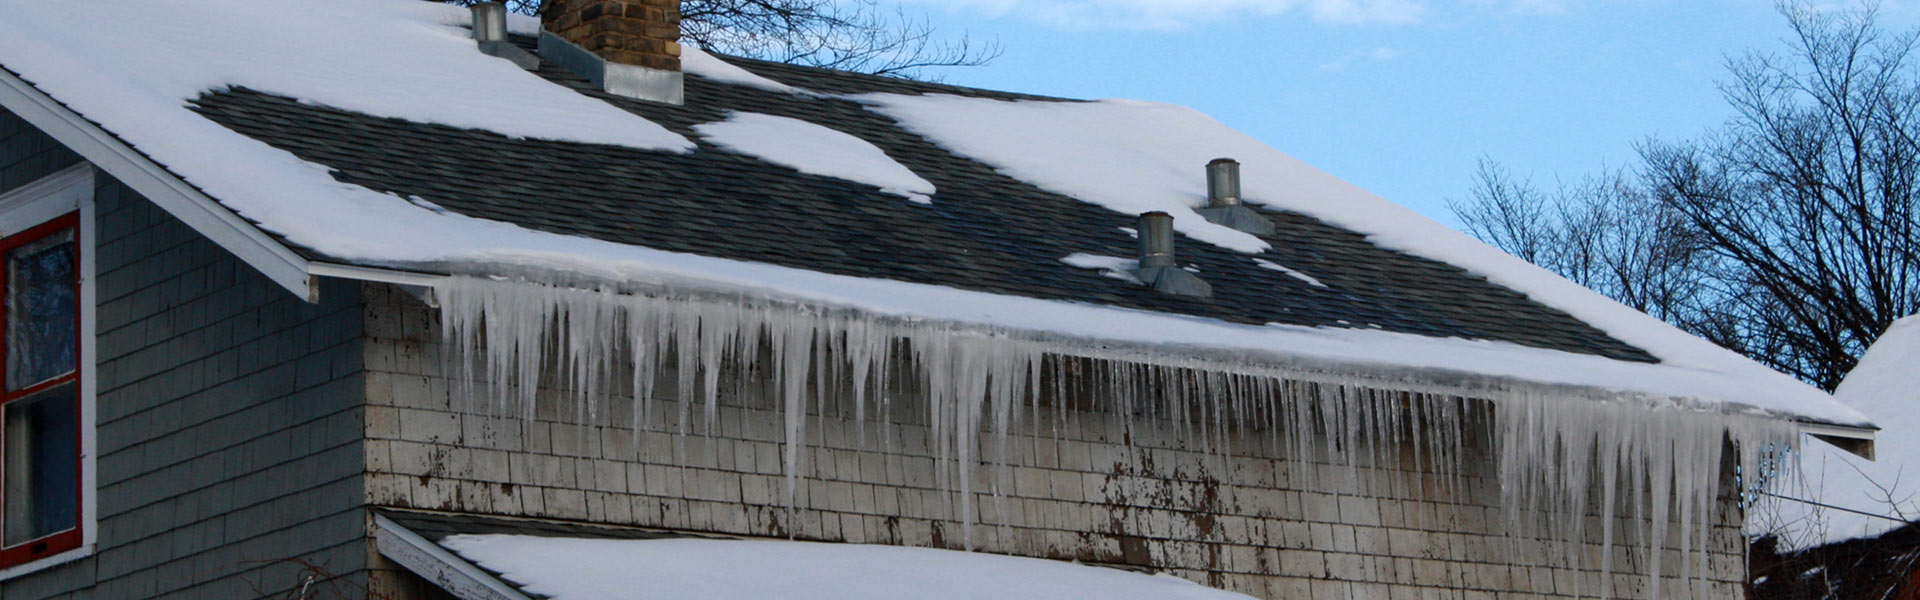 Roof Snow Removal Services - Watershed Roofing | Free Quotes!